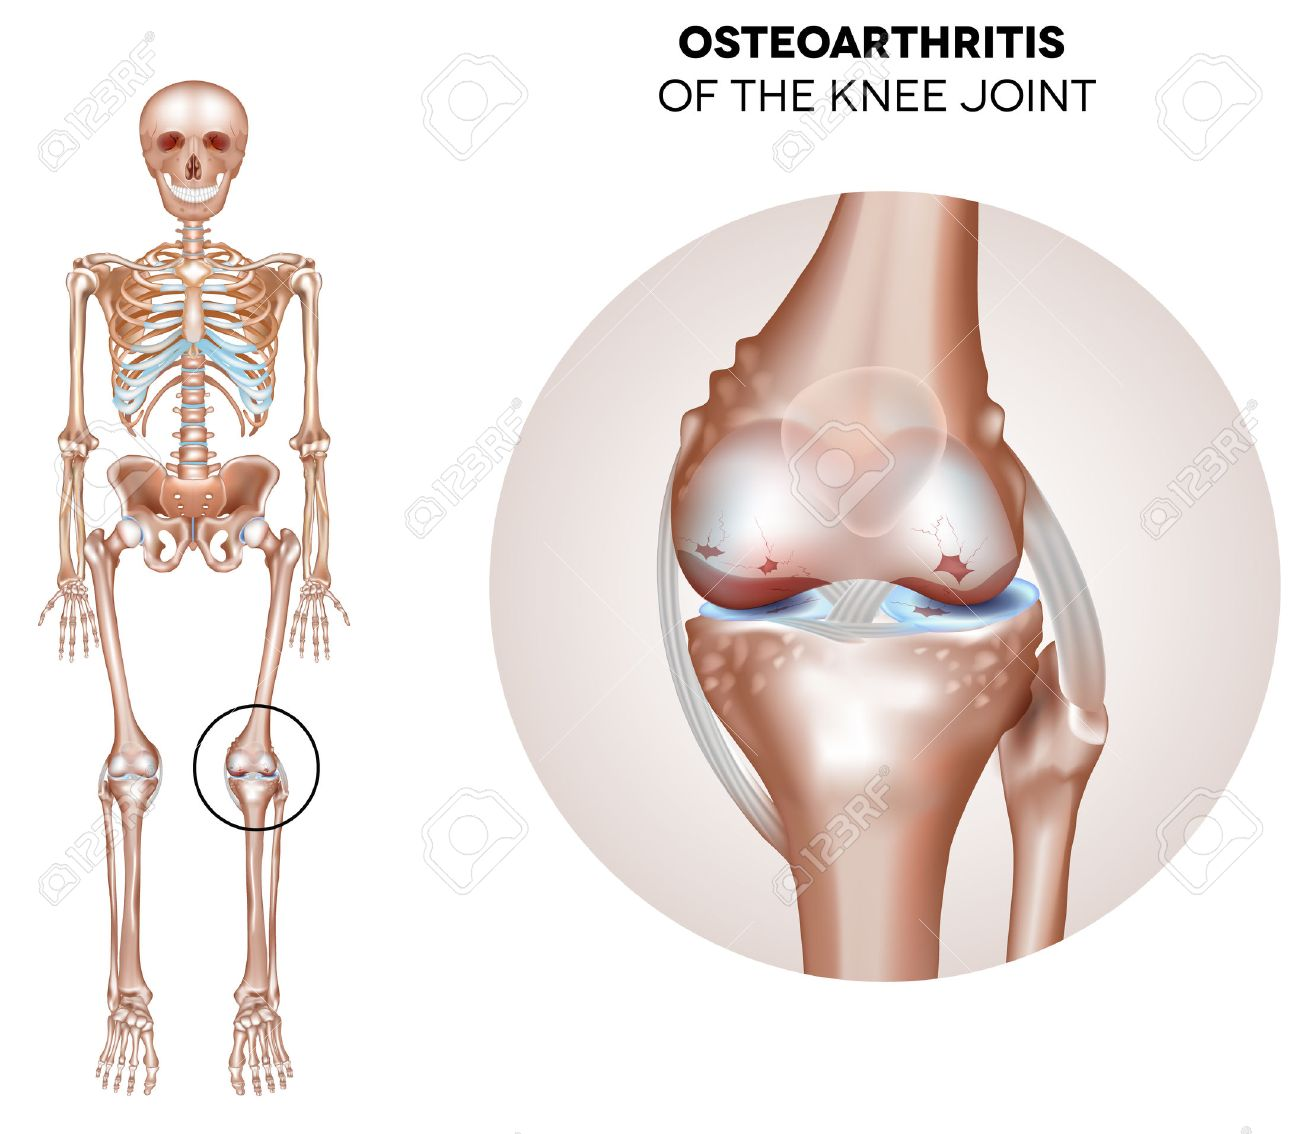 Arthritis of the knee joint damaged joint cartilage and osteophytes arthritis of the knee joint damaged joint cartilage and osteophytes stock vector 40404434 ccuart Image collections